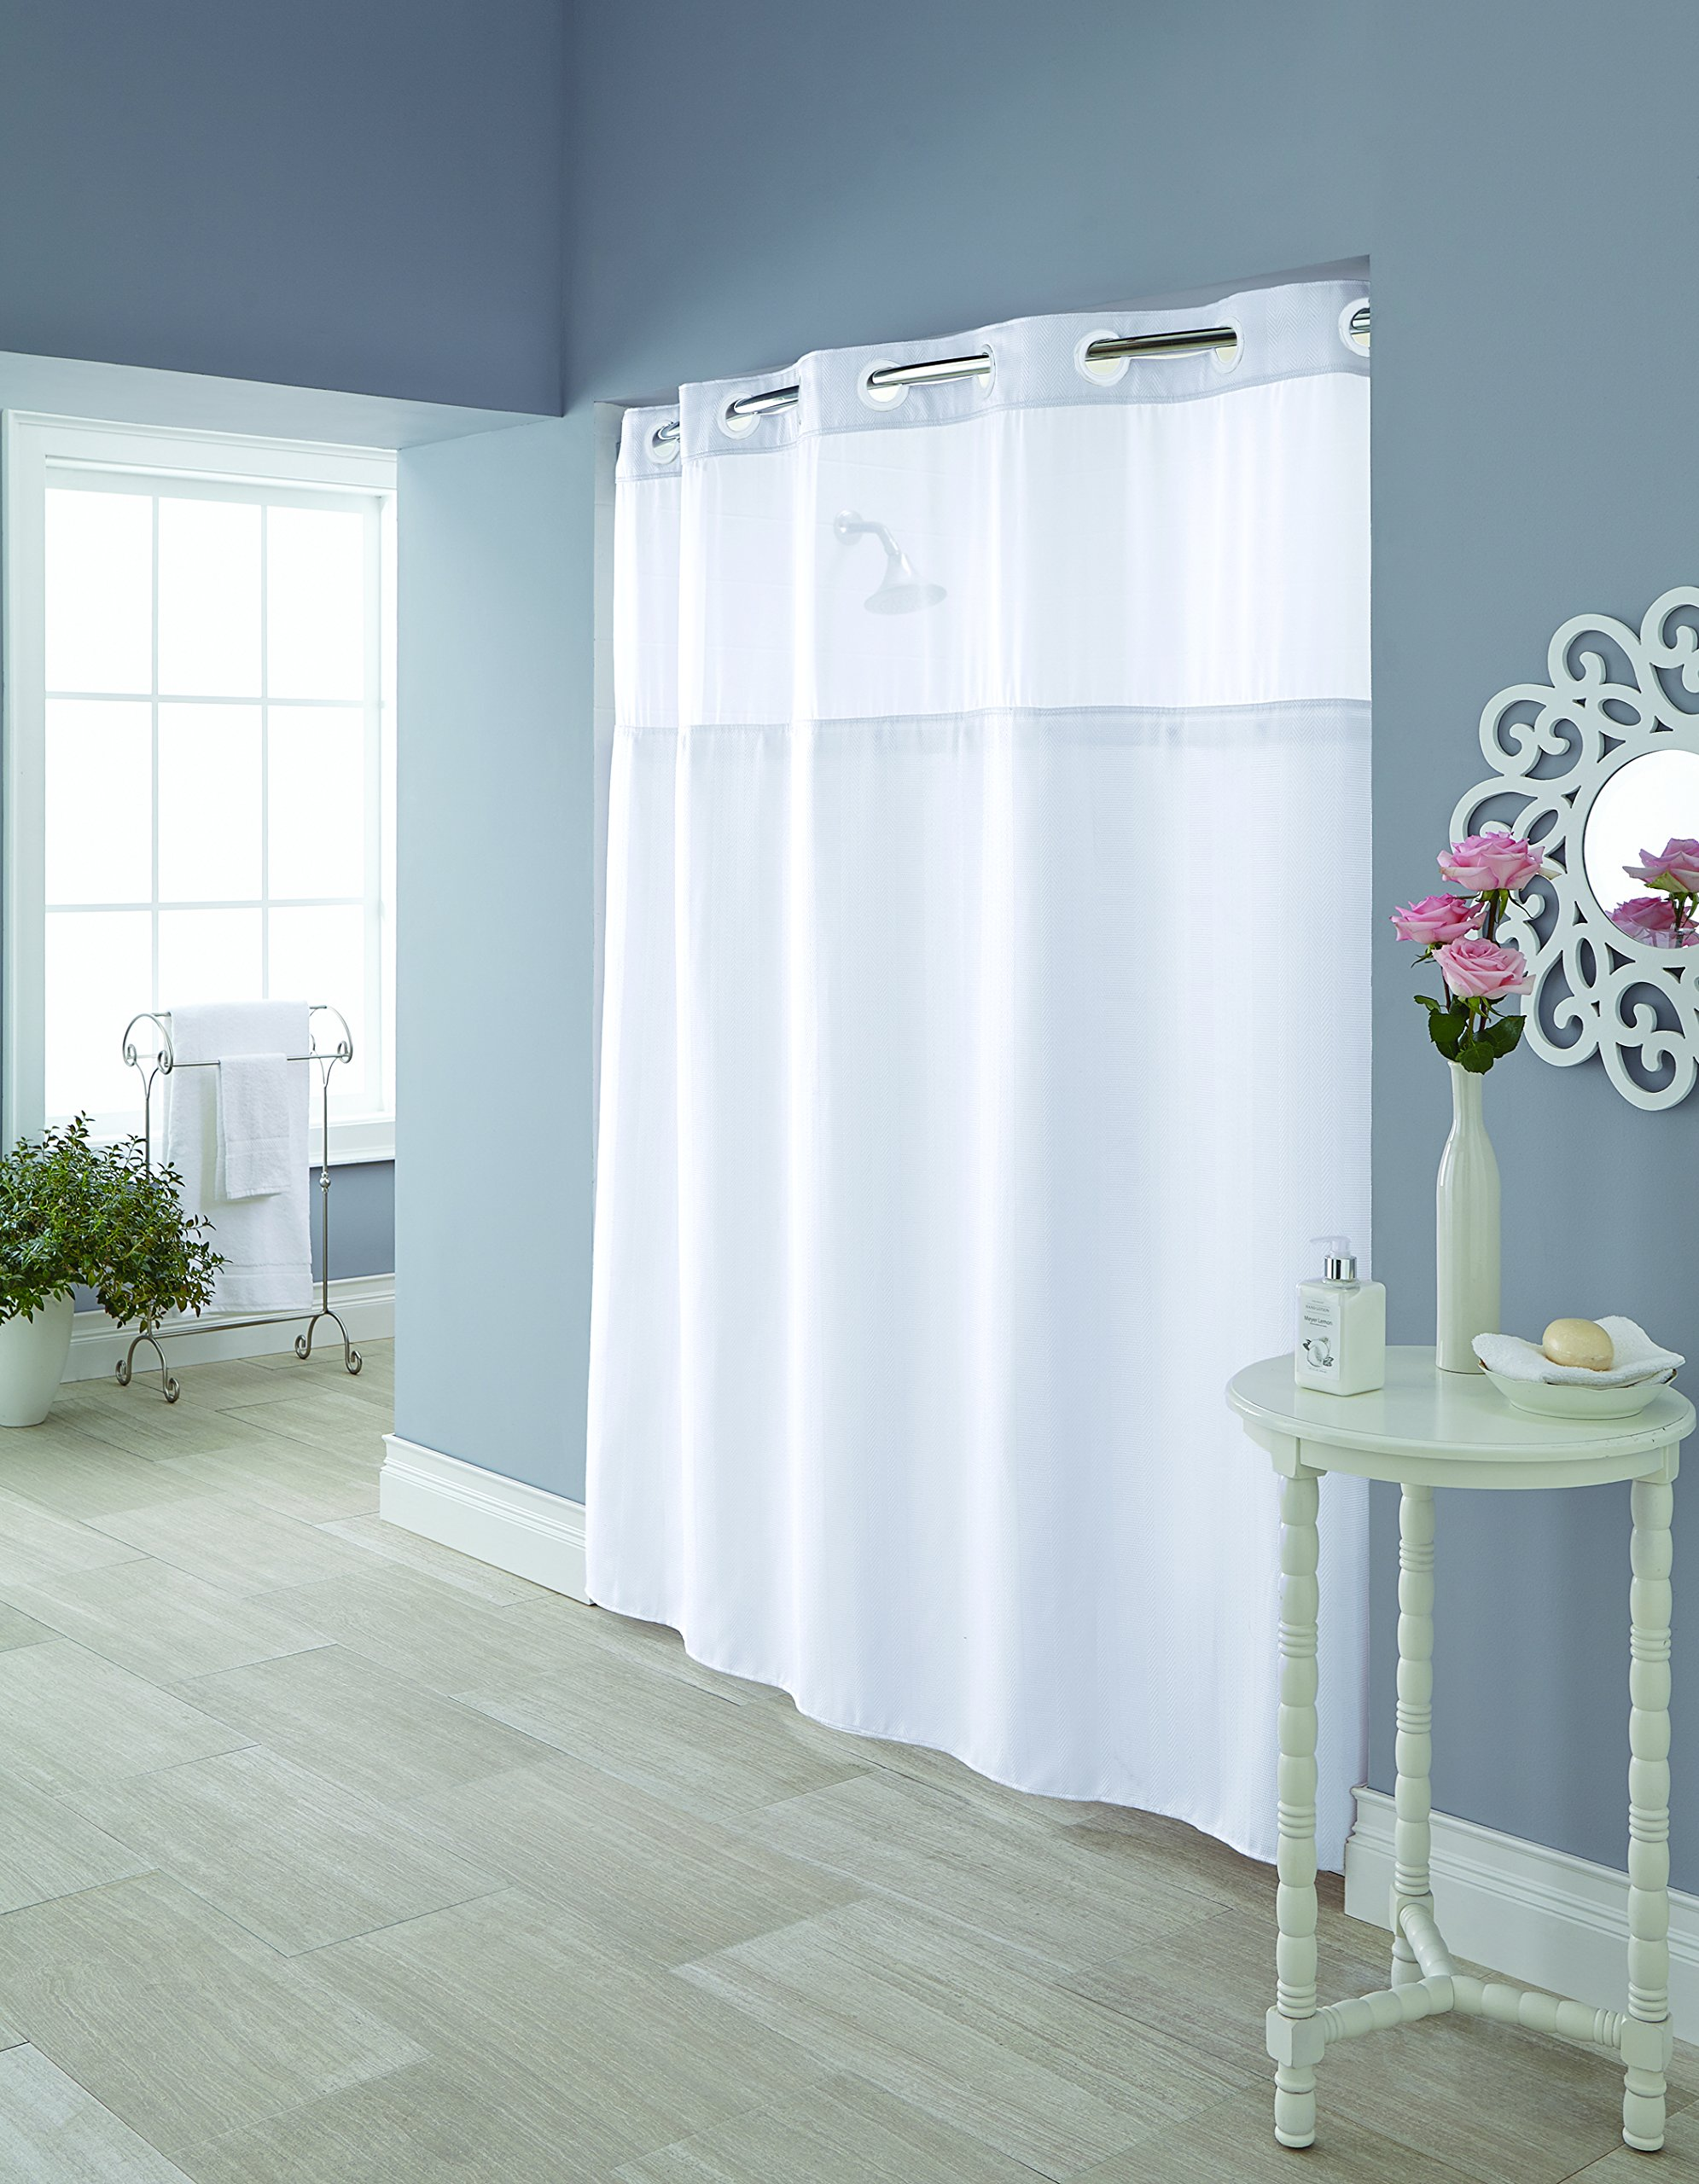 Hookless RBH95MY980 Hudson Herringbone Shower Curtain with Snap-In PEVA Liner - Bright White